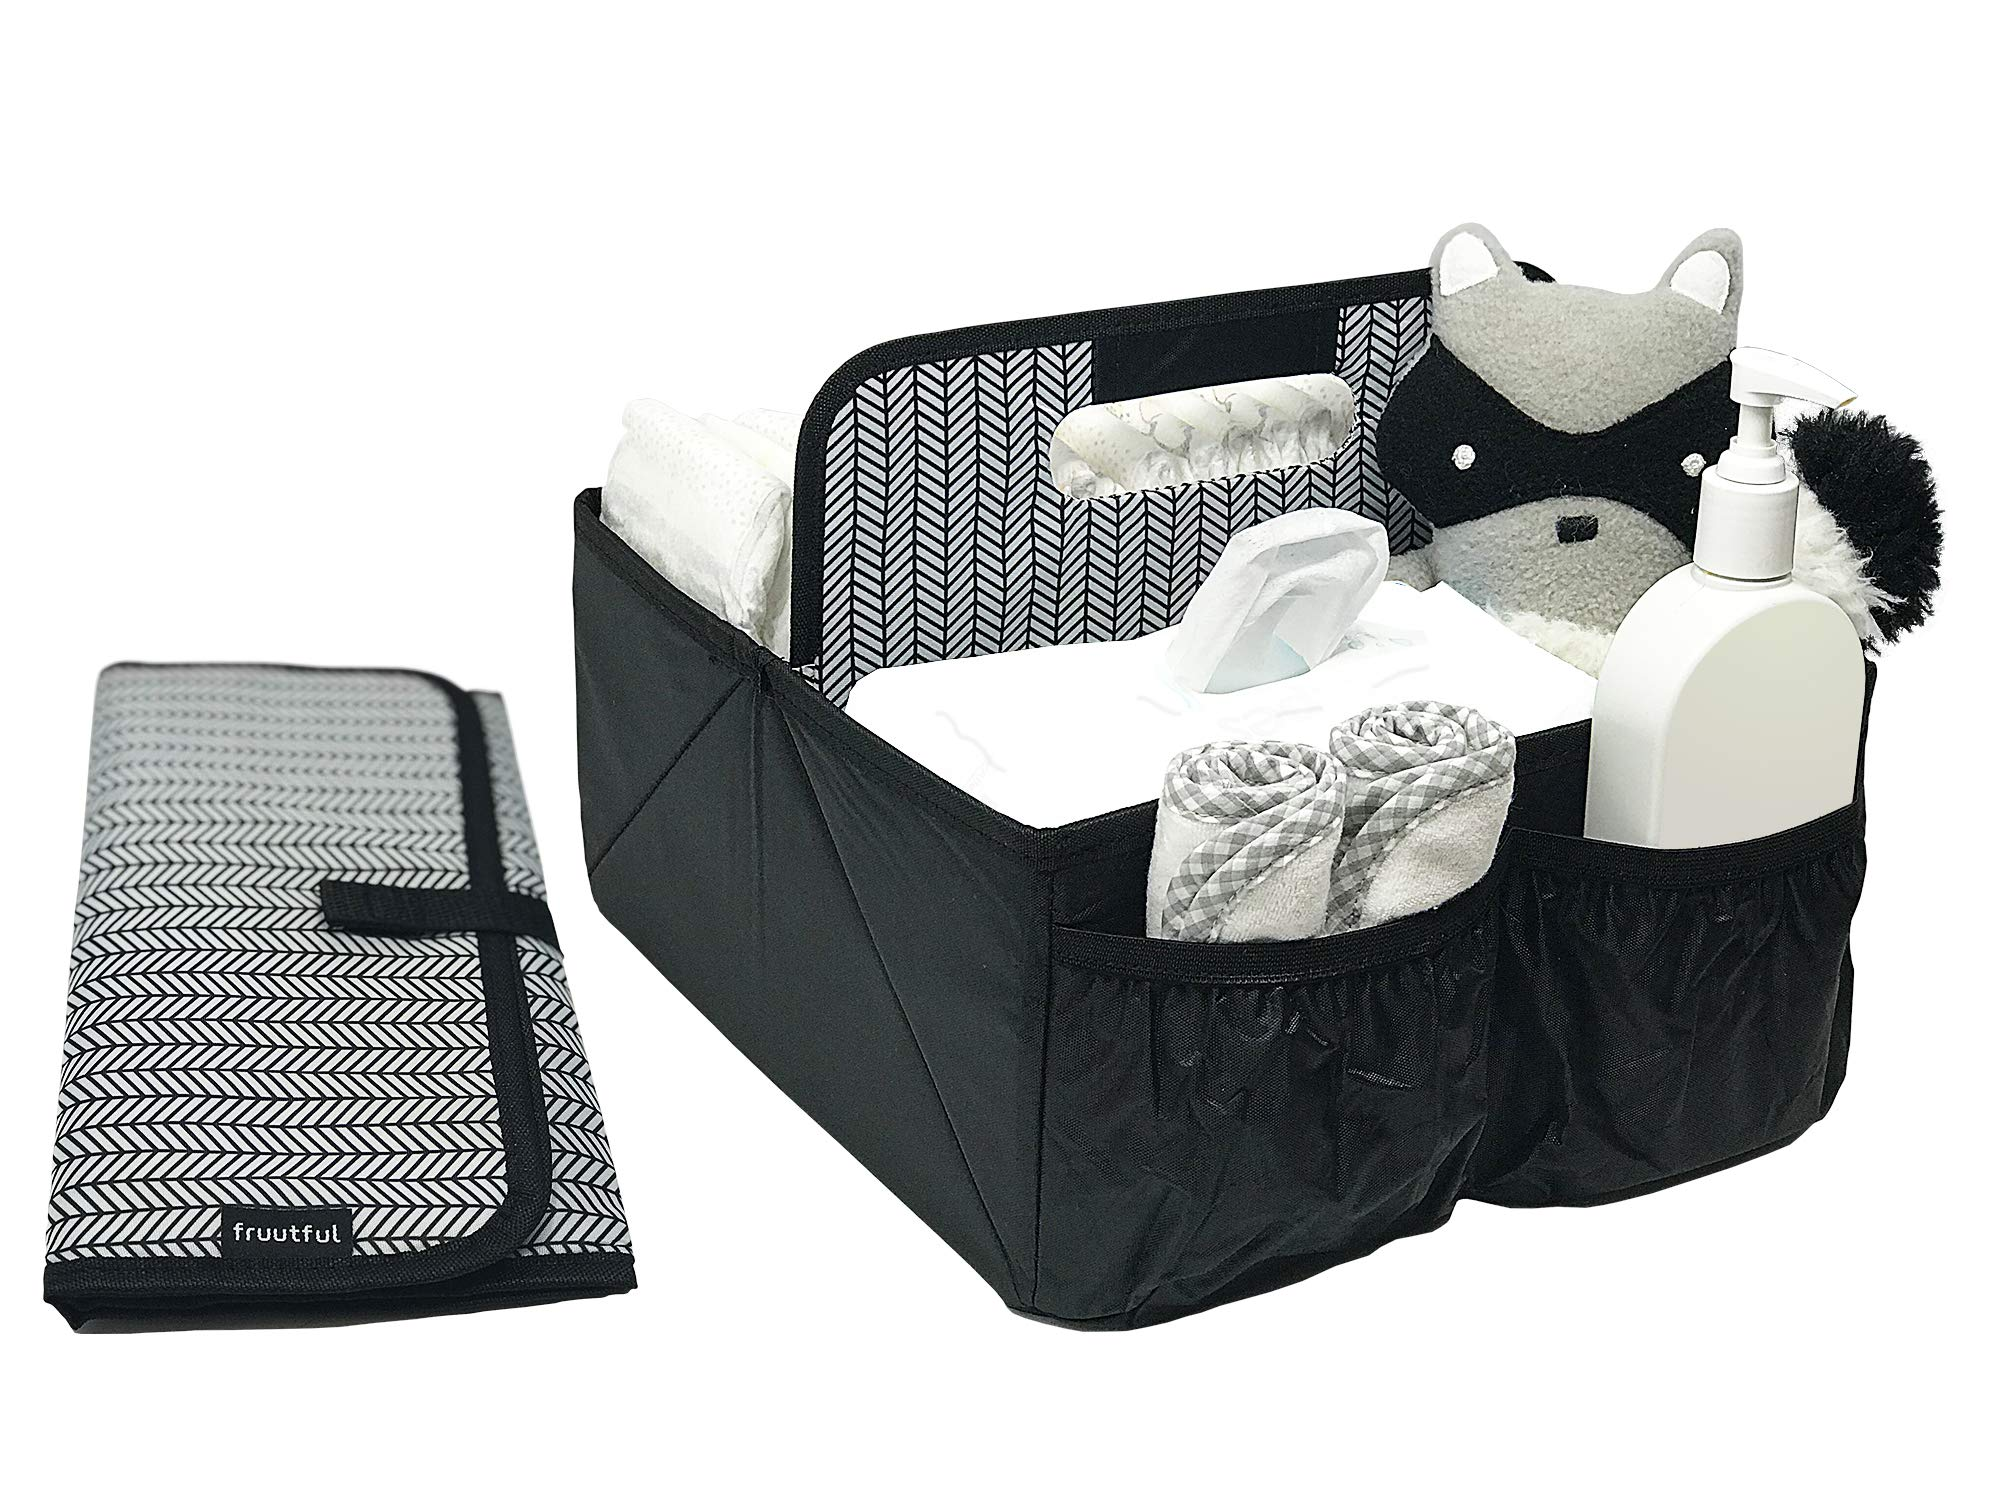 Baby Diaper Caddy and Car Organizer for Accessories: Large Portable Boy or Girl Nursery Storage Bin for Changing Table with Changing Pad: Baby Registry Shower Gift: Baby Stuff by Fruutful